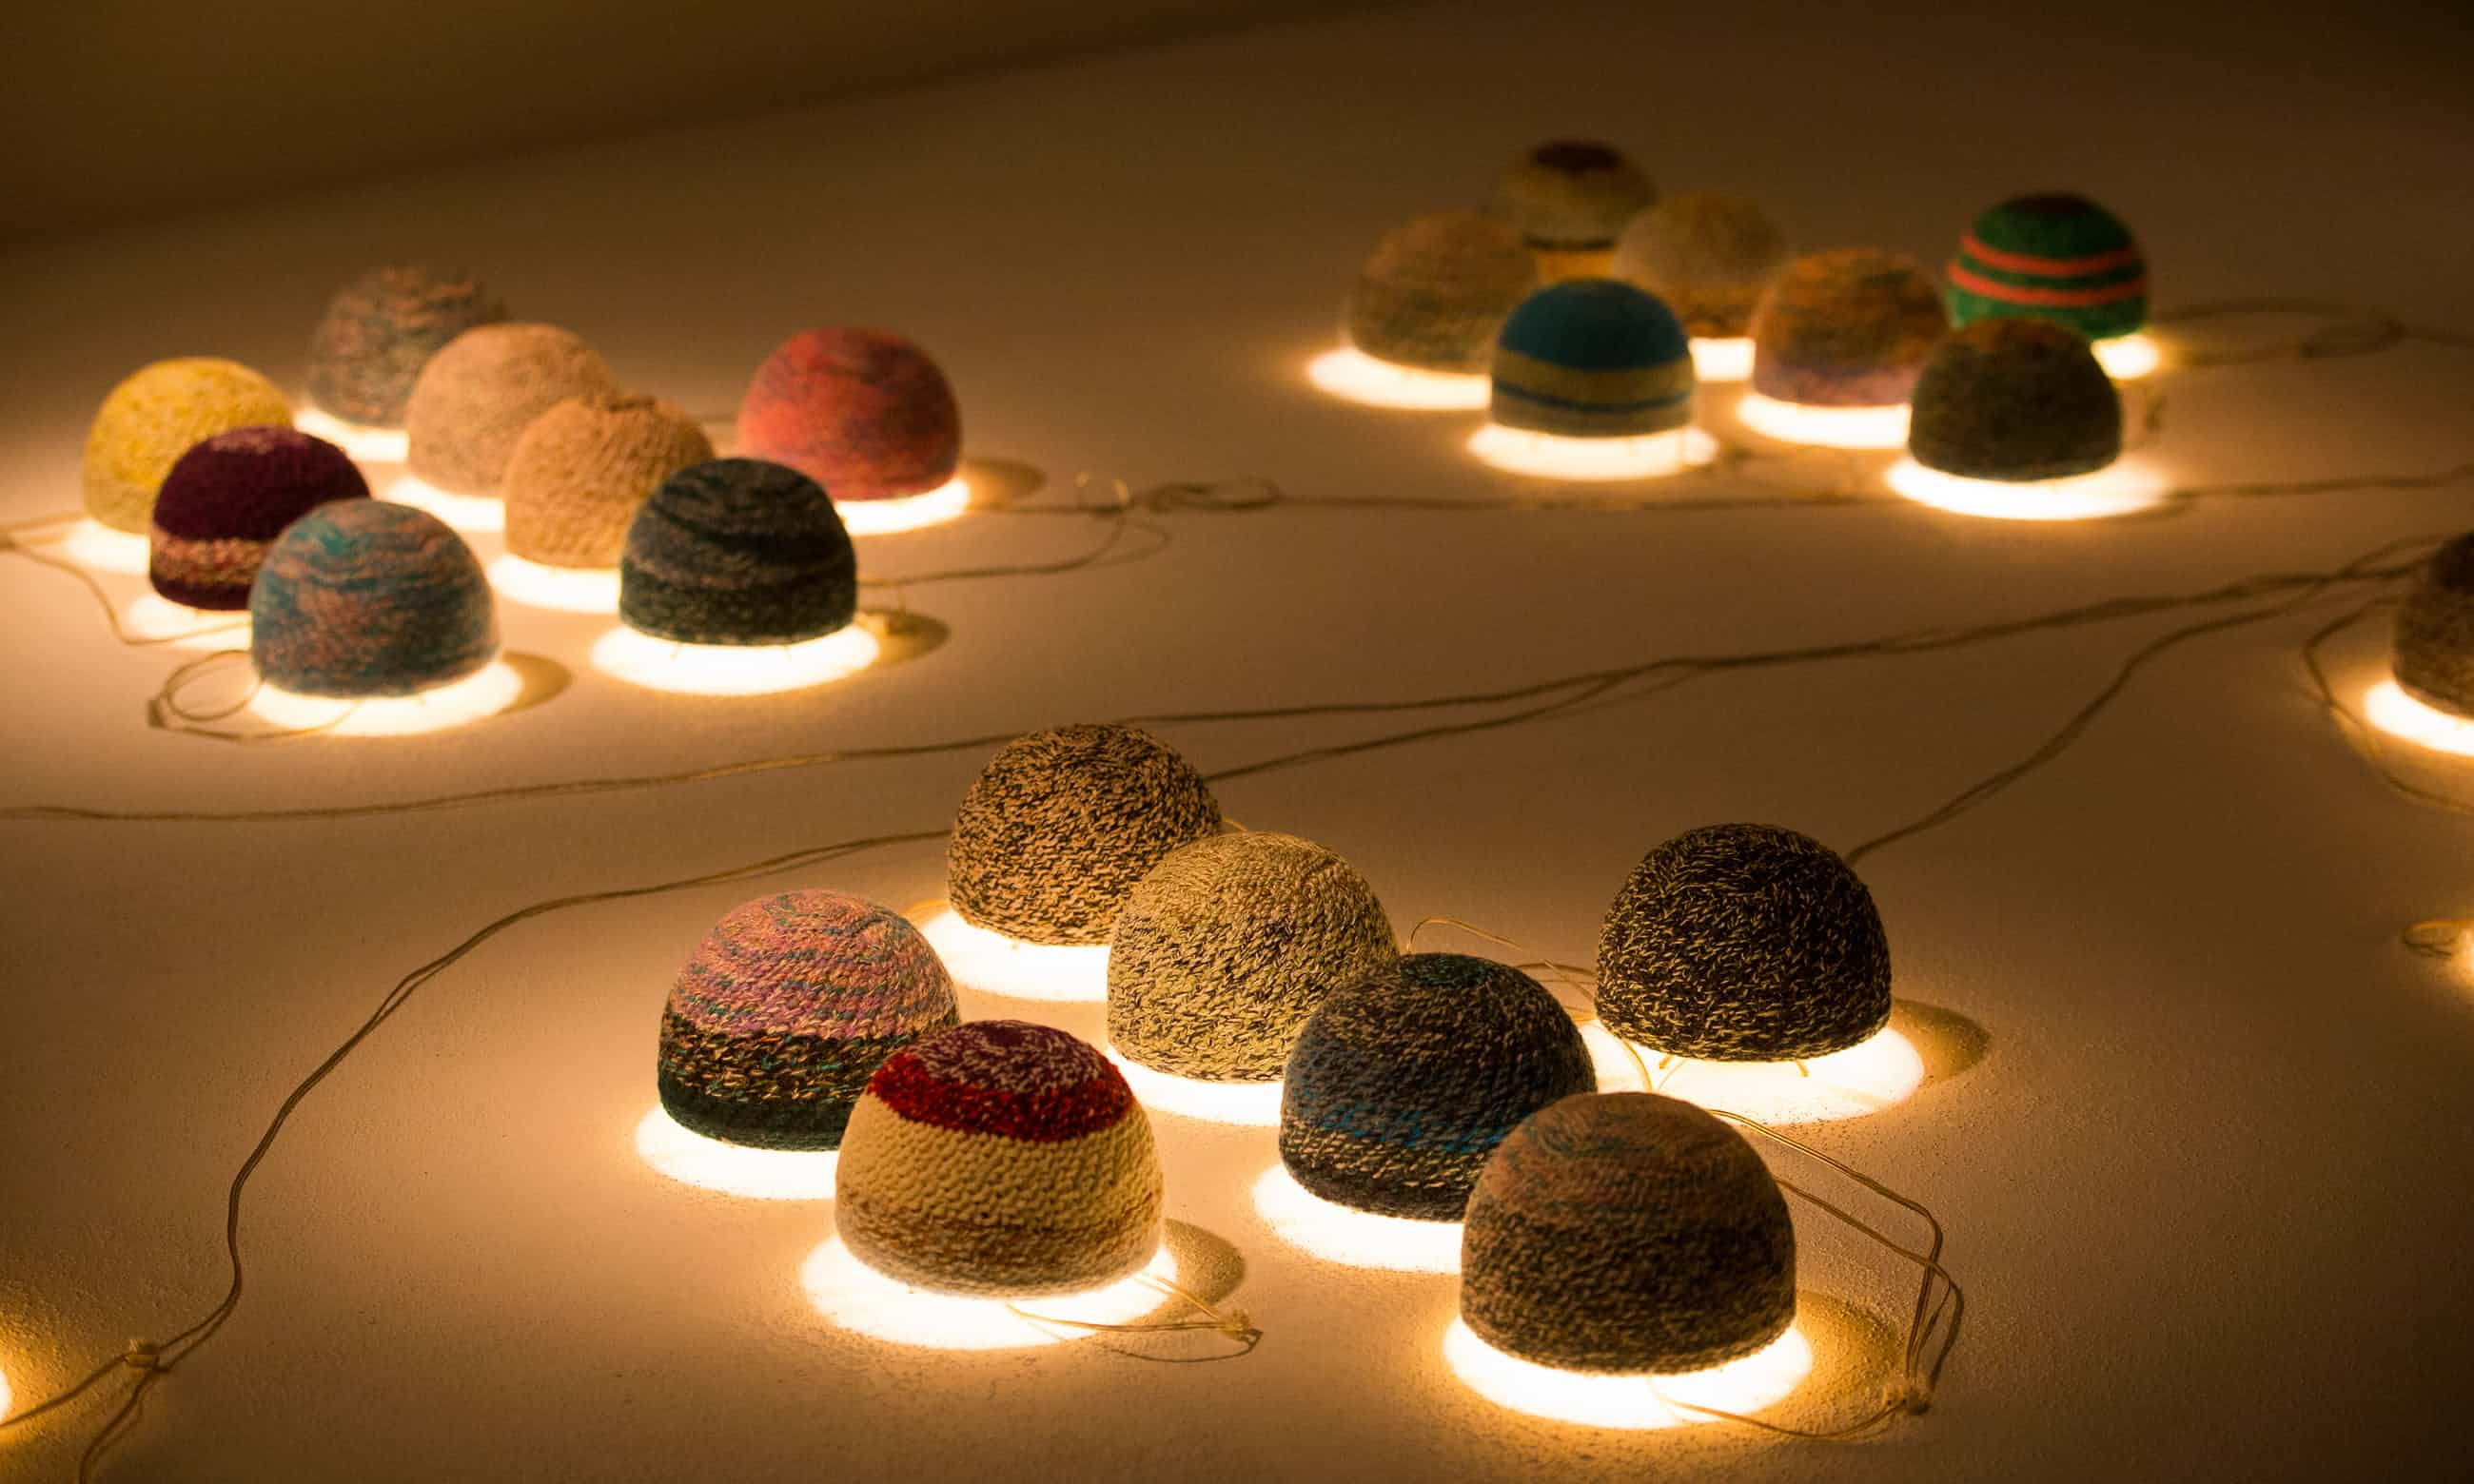 When 77 Hats Do the Lotus Position: the Cosmic World of Younes Rahmoun